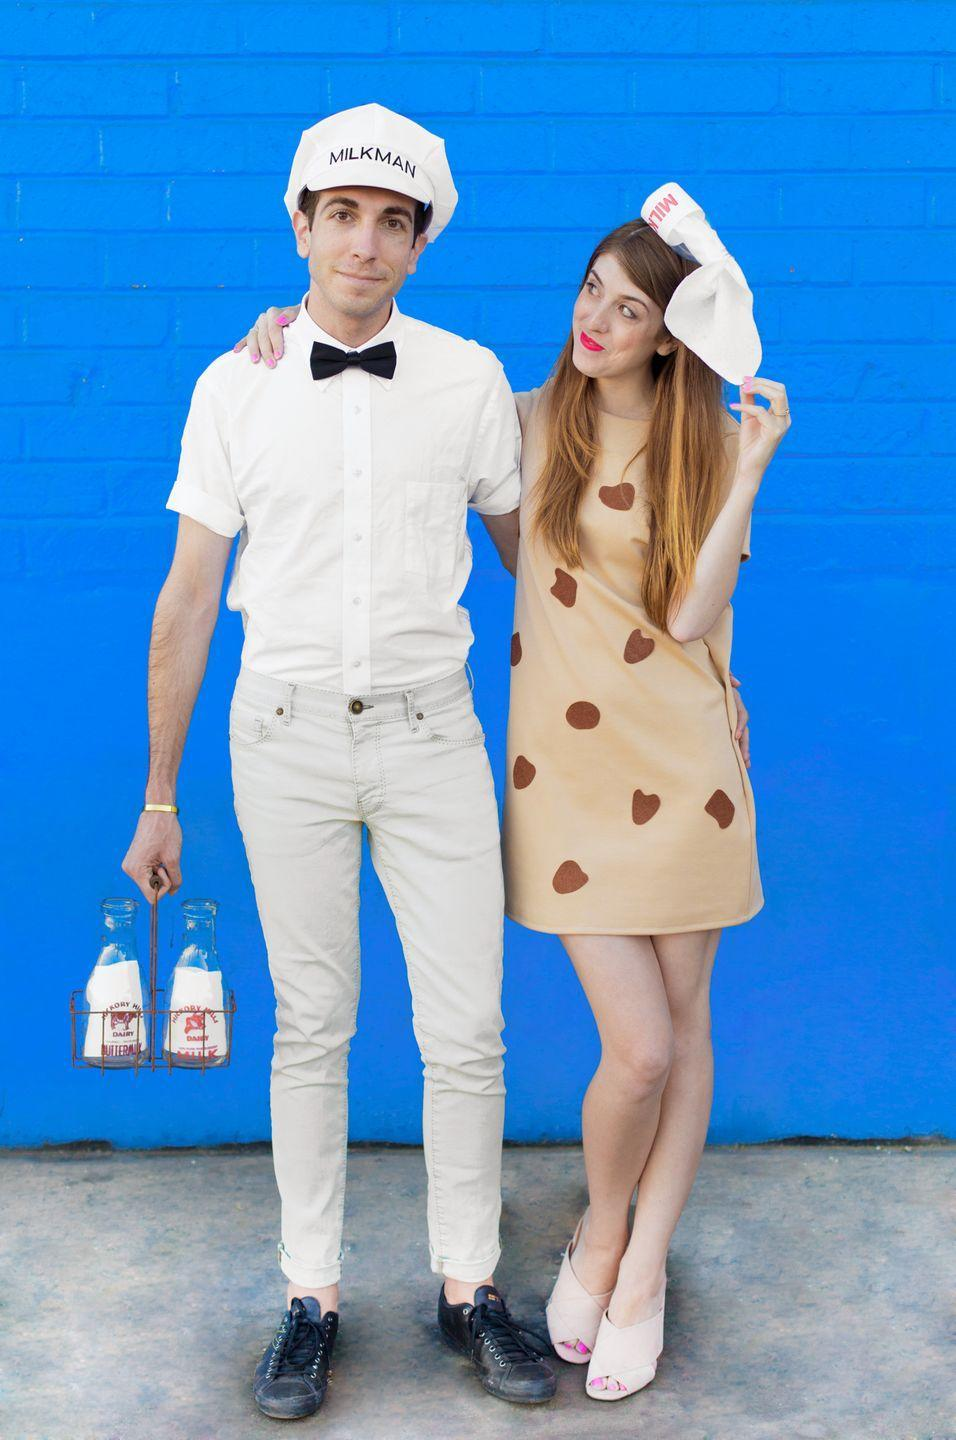 """<p>The cutest last-minute costume you ever did see.</p><p>Get the directions <a href=""""https://studiodiy.com/2016/10/06/diy-cookies-milk-couples-costume/"""" rel=""""nofollow noopener"""" target=""""_blank"""" data-ylk=""""slk:here"""" class=""""link rapid-noclick-resp"""">here</a>.</p>"""